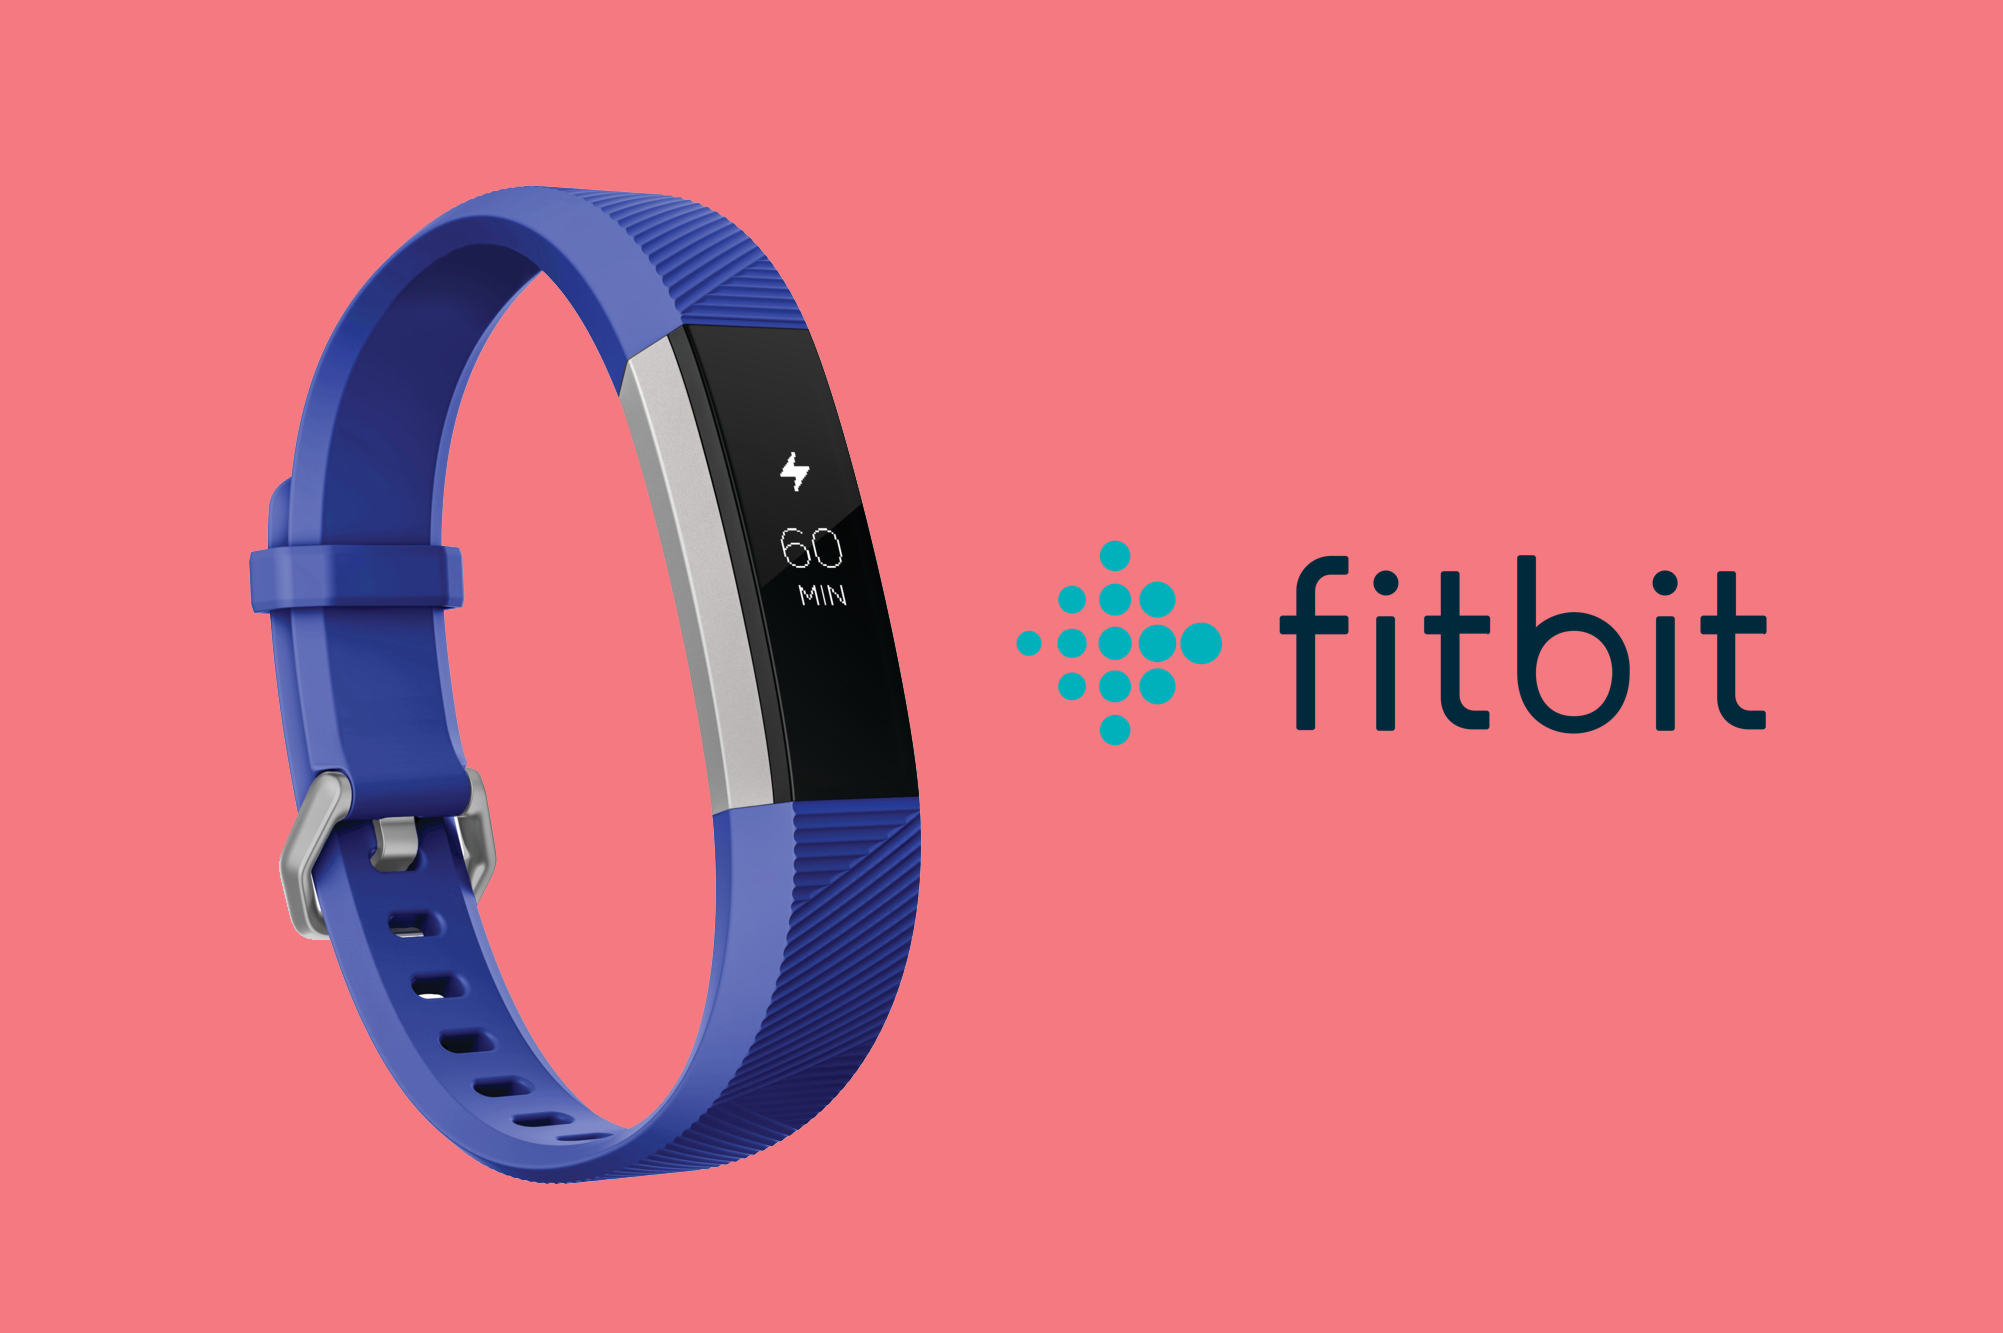 Fitbit IMC Plan - We created an integrated marketing communications plan for Fitbit, a growing company that develops and manufactures wearable technology for the health and fitness industry. Through detailed analysis of the target market as well as shortcomings of current marketing strategies and tactics, we were able to come up with a list of recommendations to increase user acquisition and retention. Check out our work below!